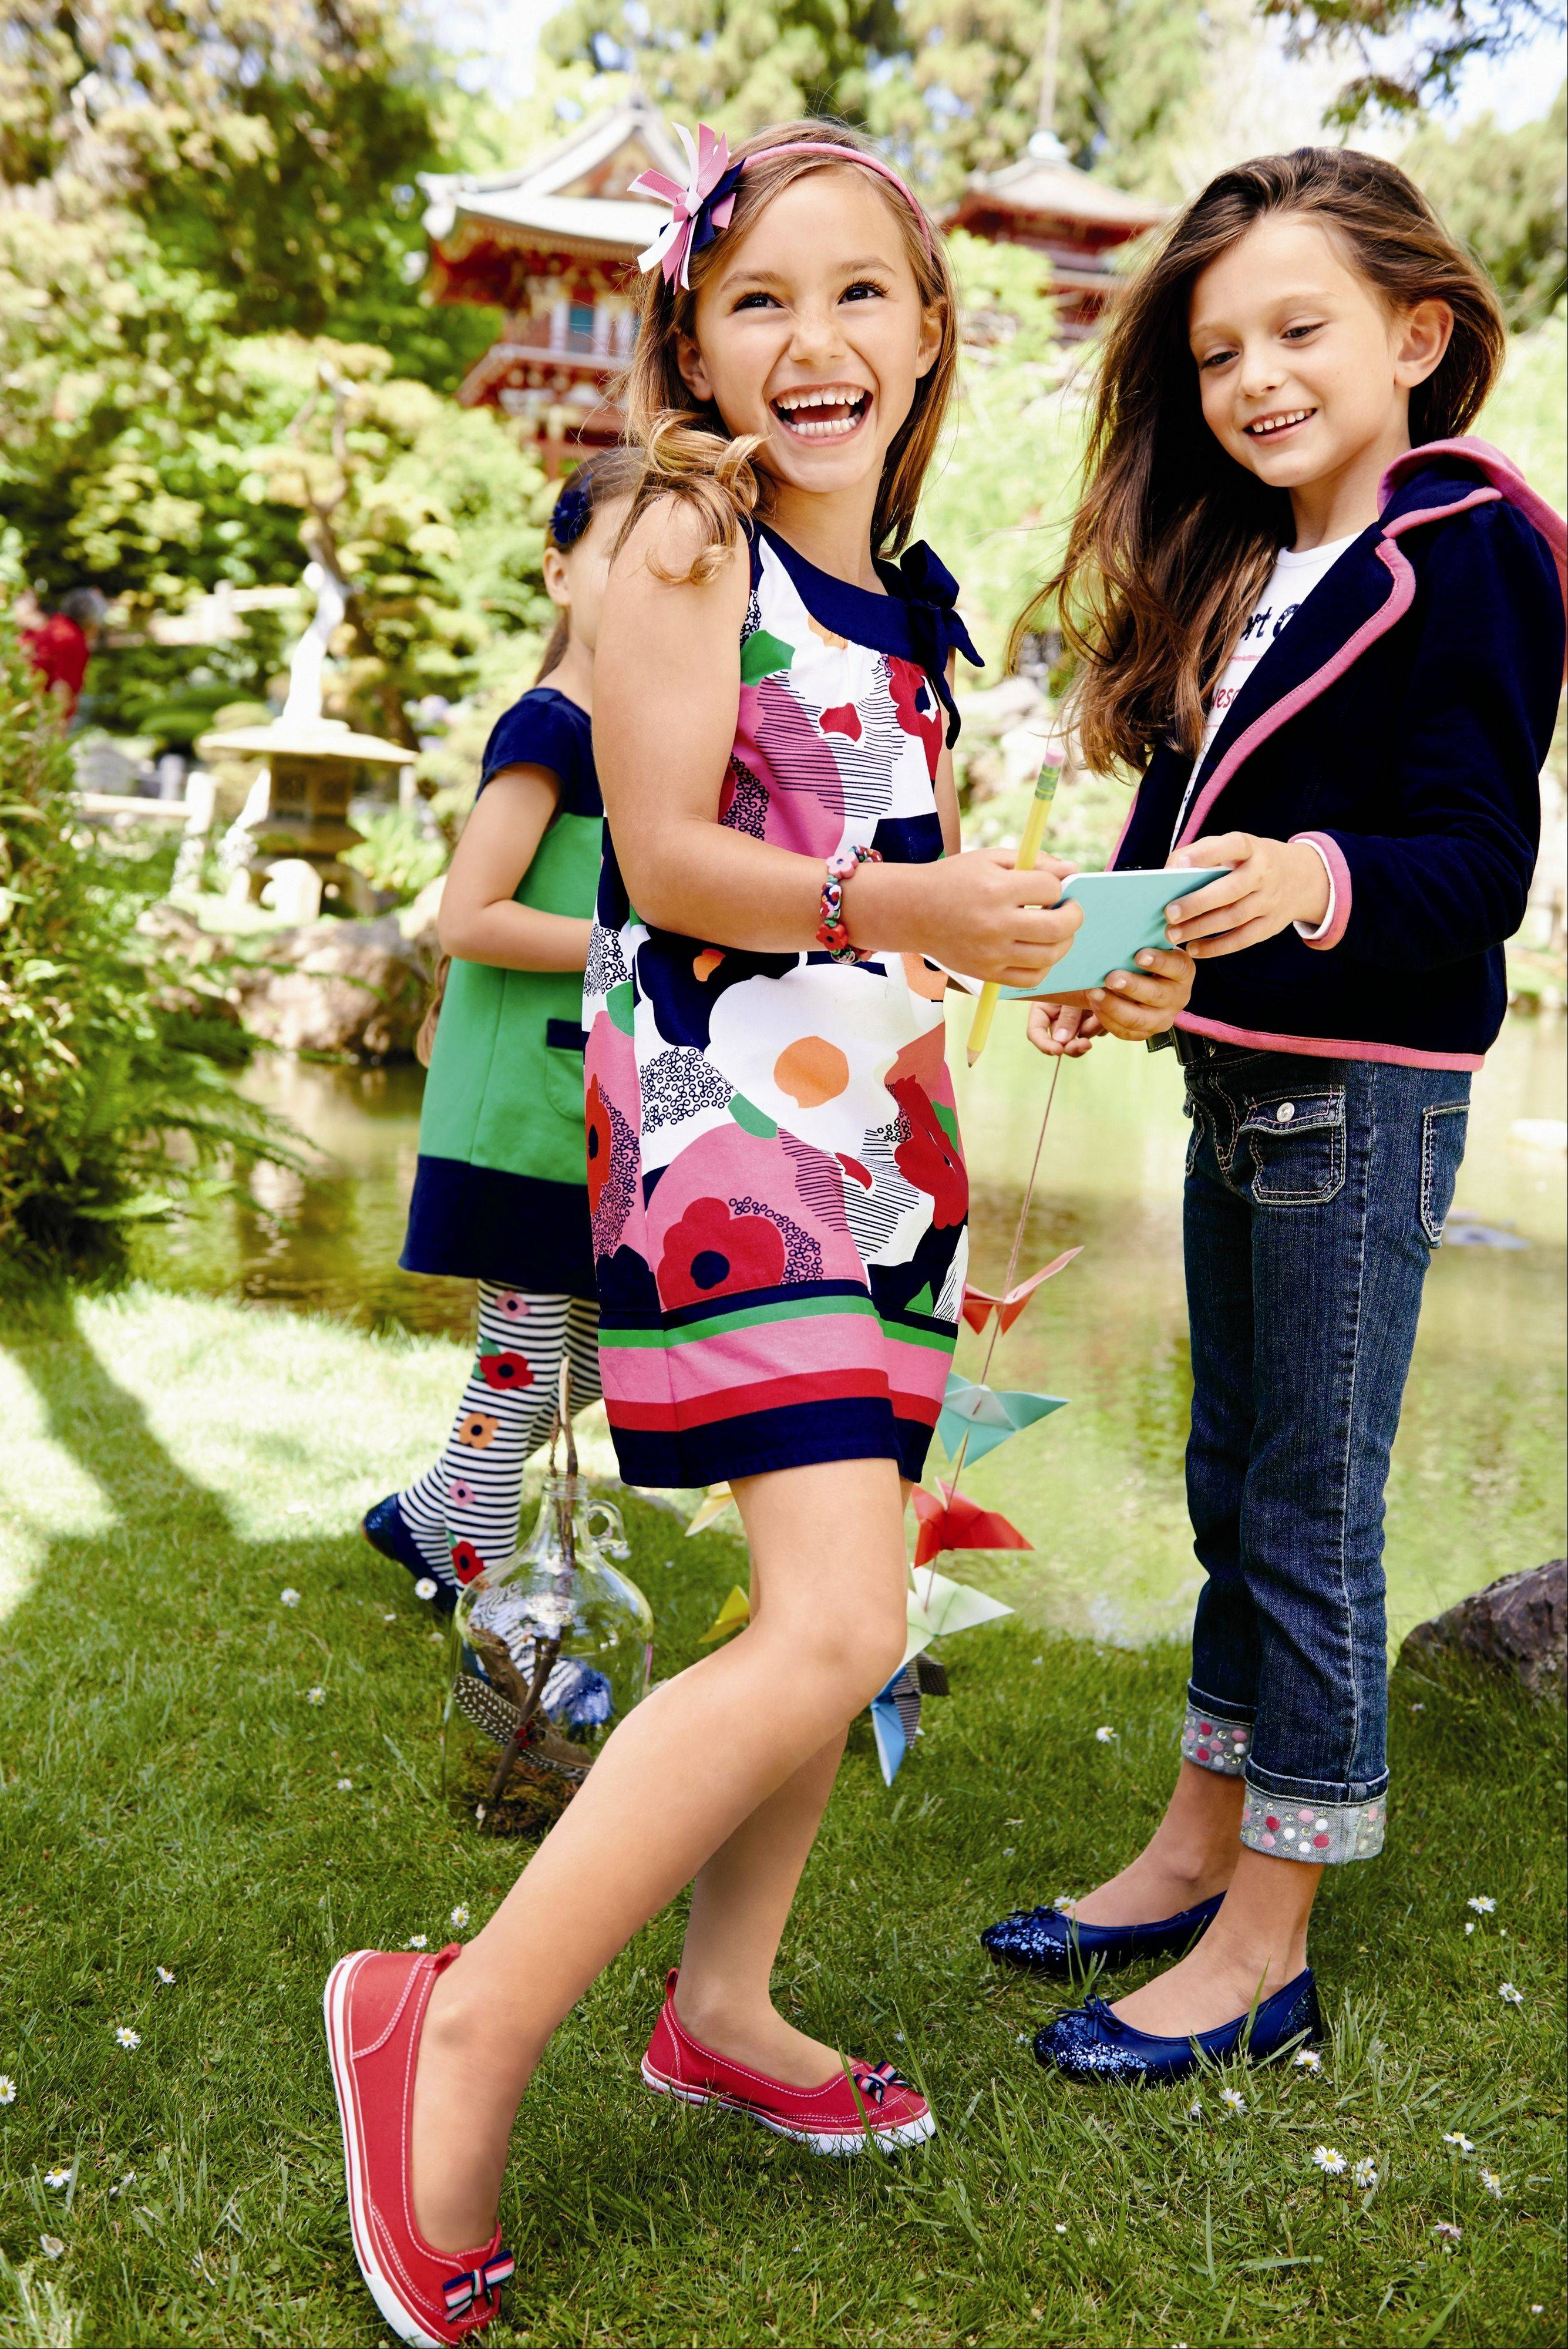 Floral print dresses are great first-day outfits for girls in grade school. $34.95 at Gymboree, gymboree.com